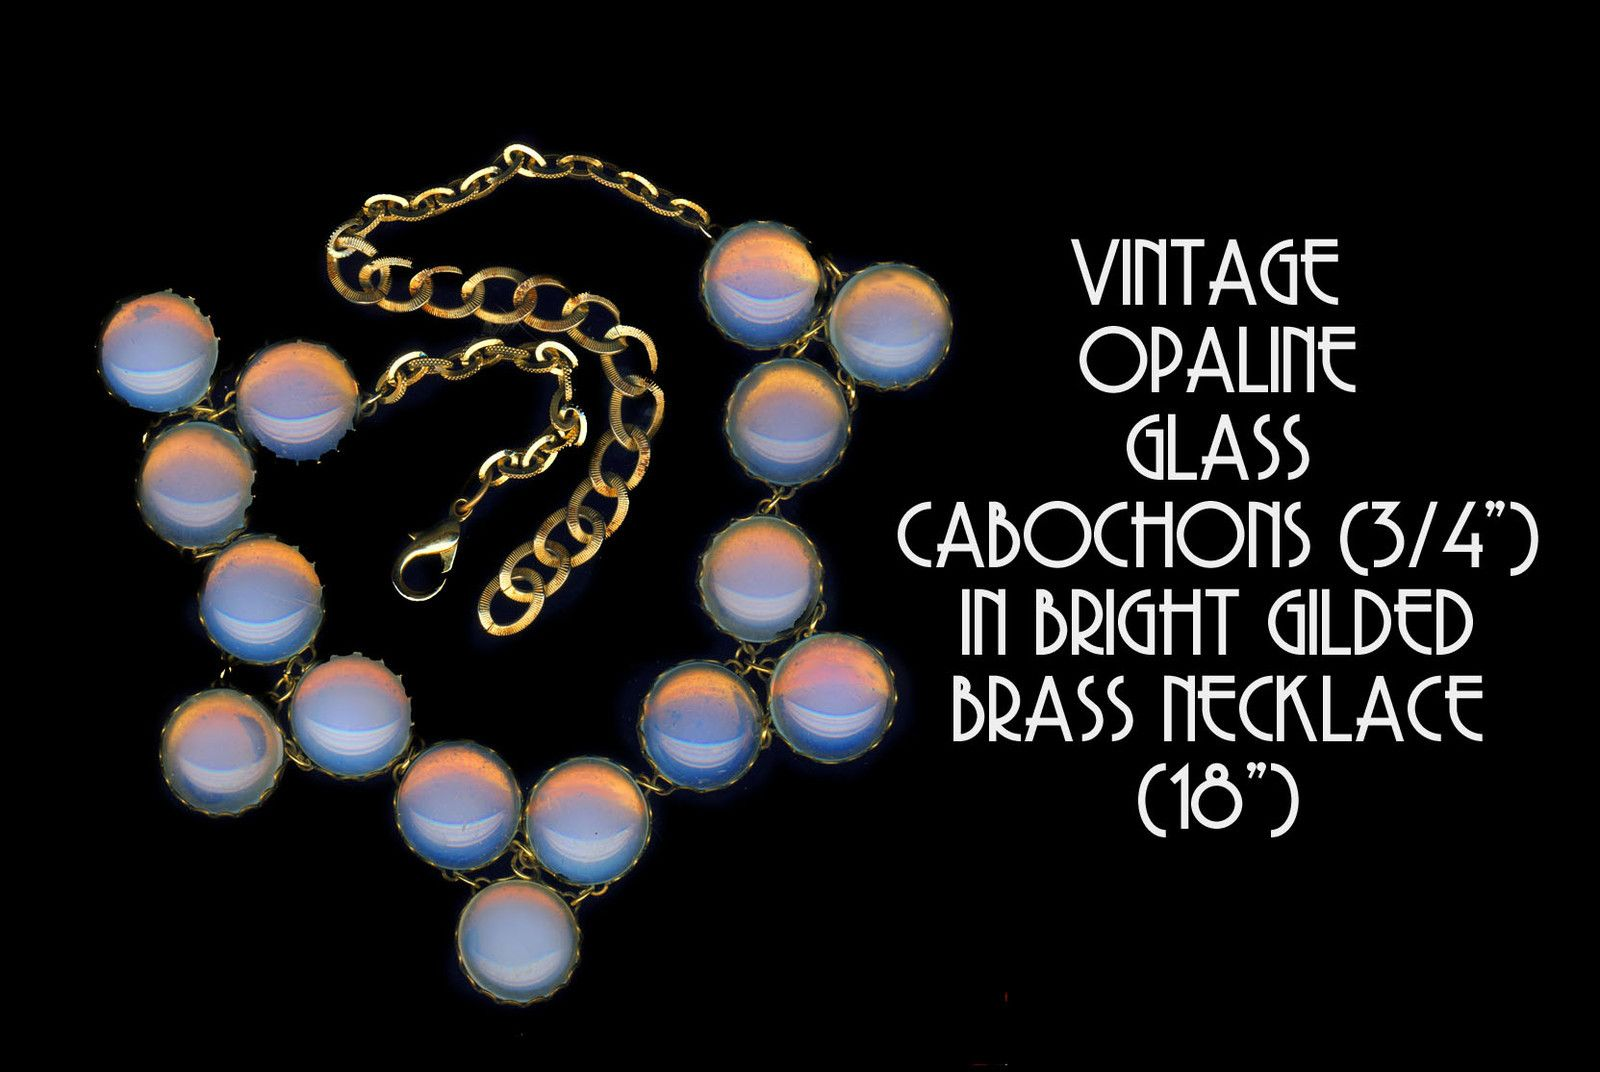 Necklace Modern Large Eye Catching Opalescent Cabochons with Drops in Brass ~ R C Larner Buttons at eBay  http://stores.ebay.com/RC-LARNER-BUTTONS